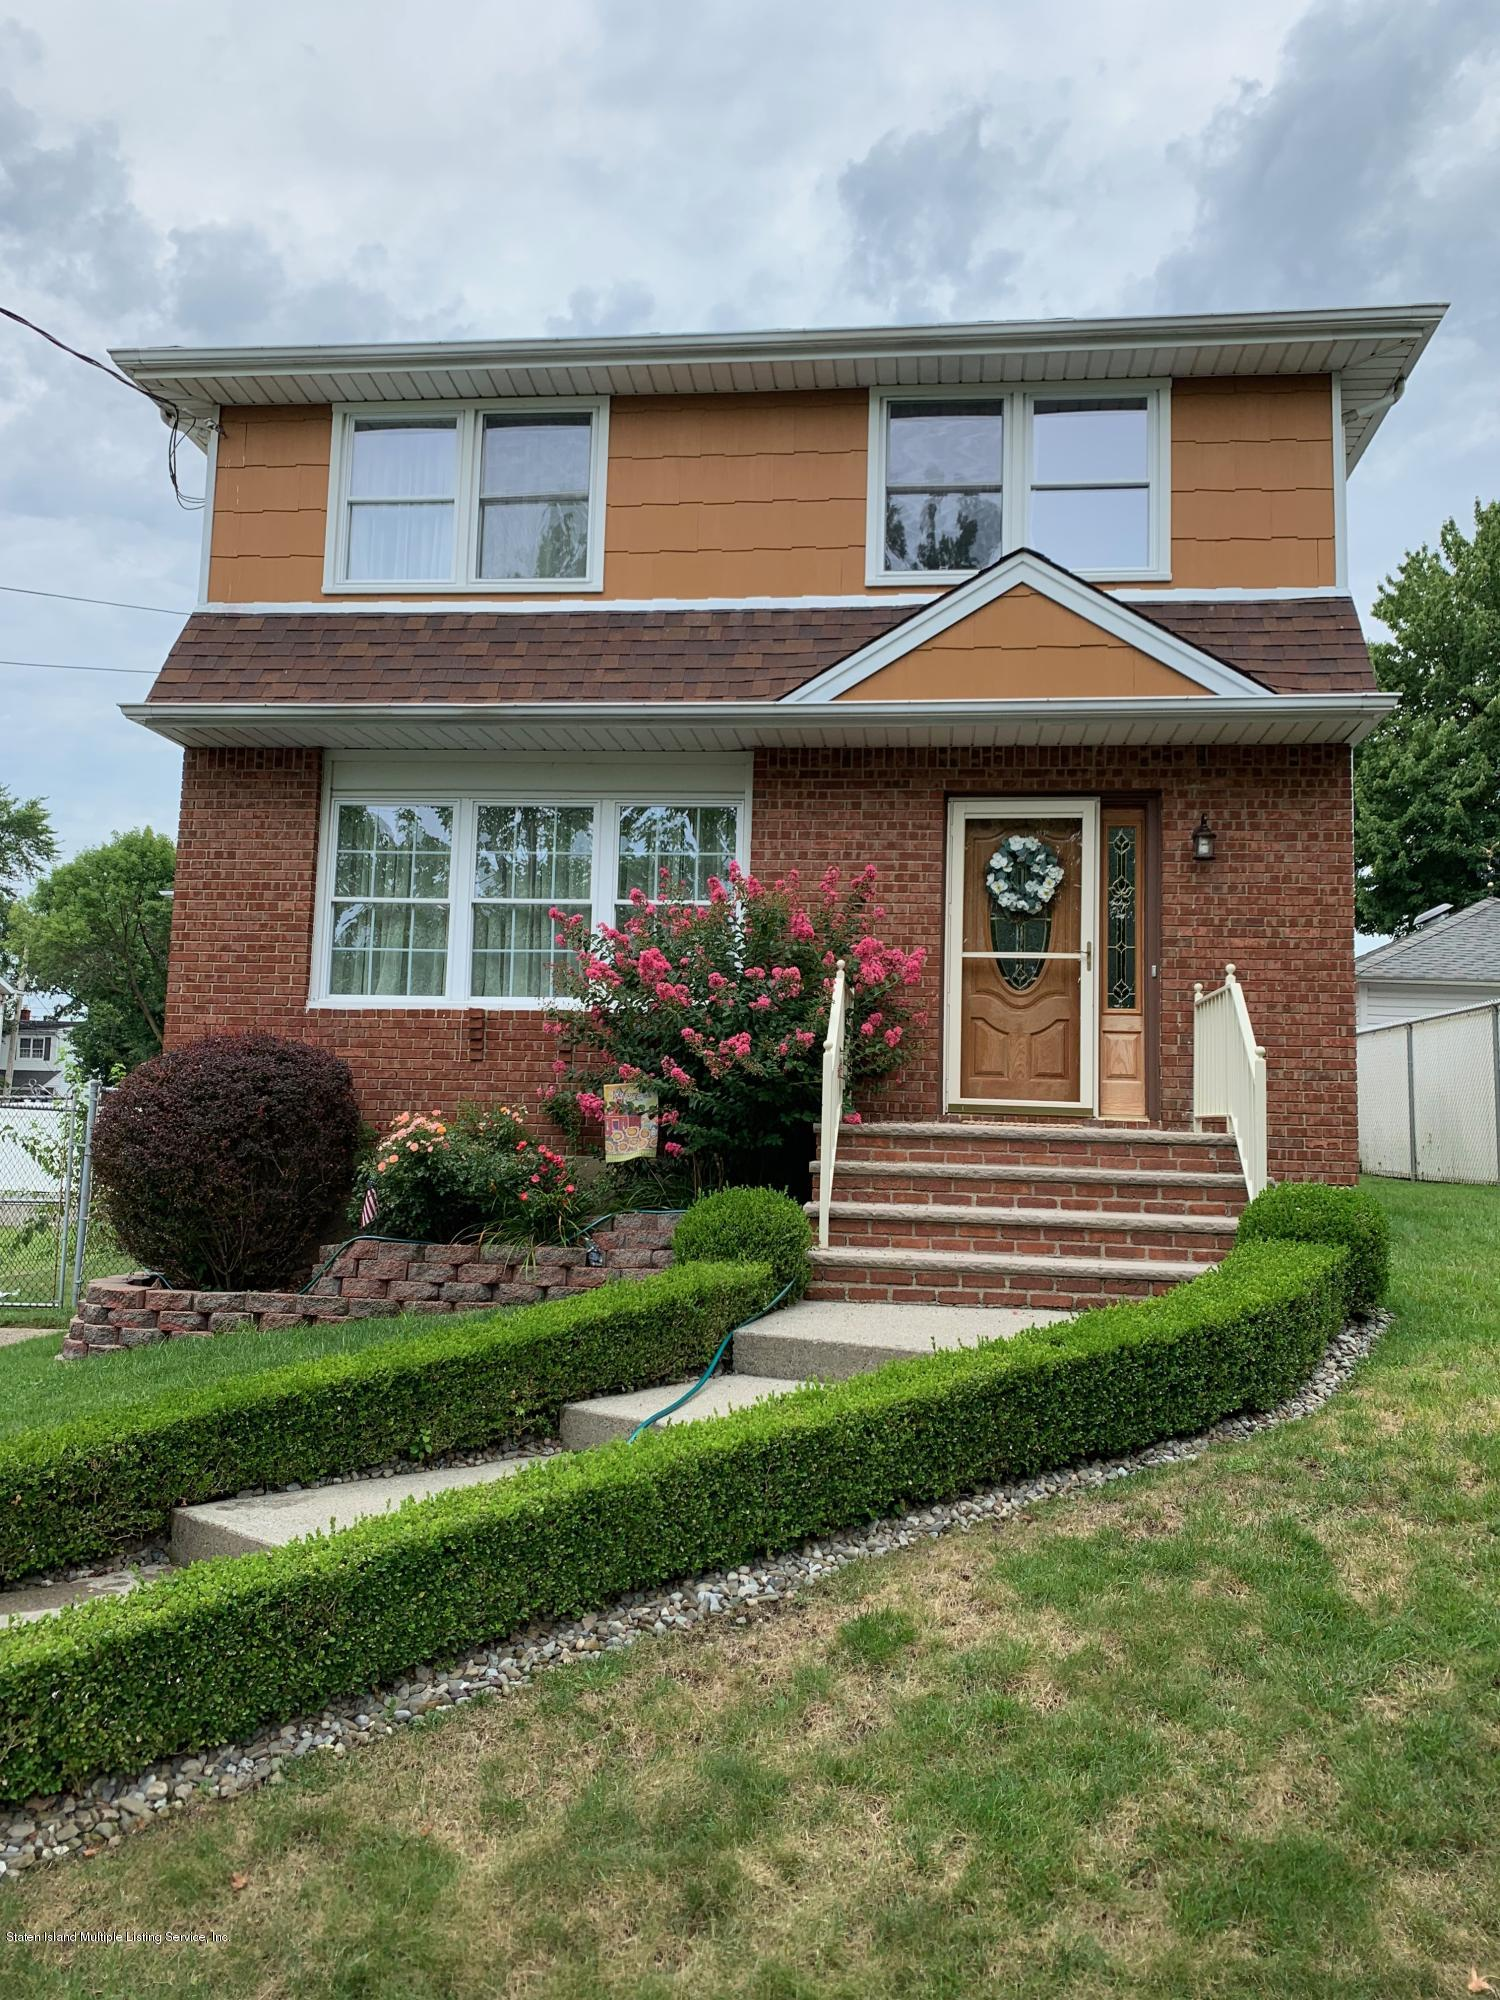 Single Family - Detached 327 Ashland Avenue  Staten Island, NY 10309, MLS-1131430-2